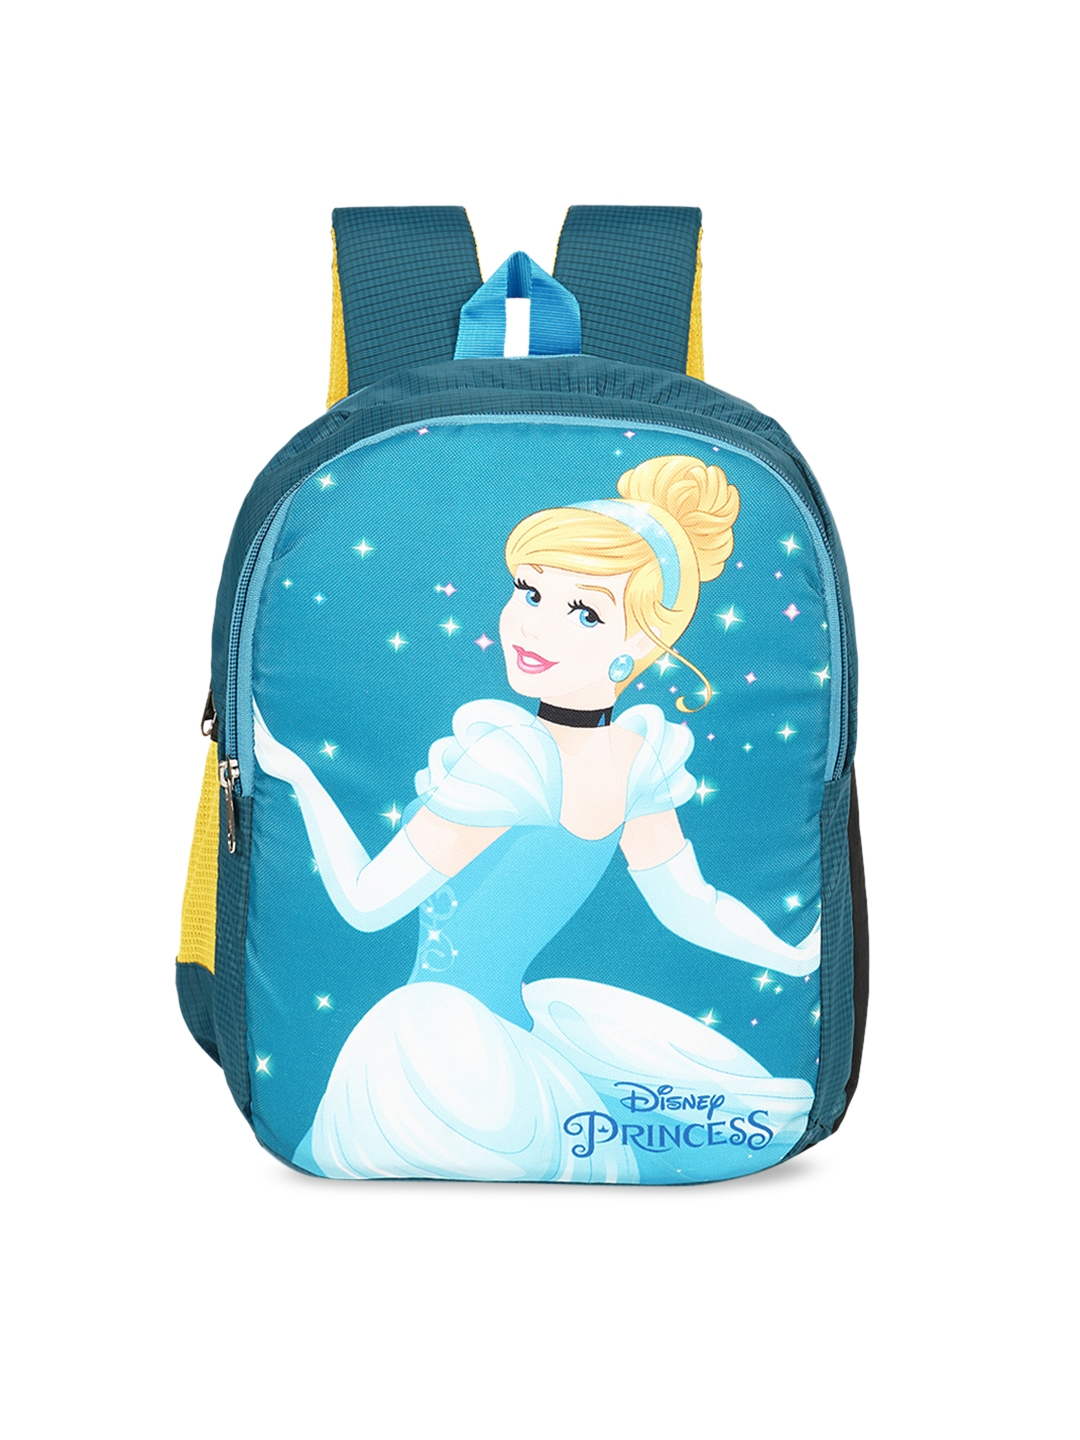 Priority Girls Blue   Yellow Cinderella Princess Graphic Backpack